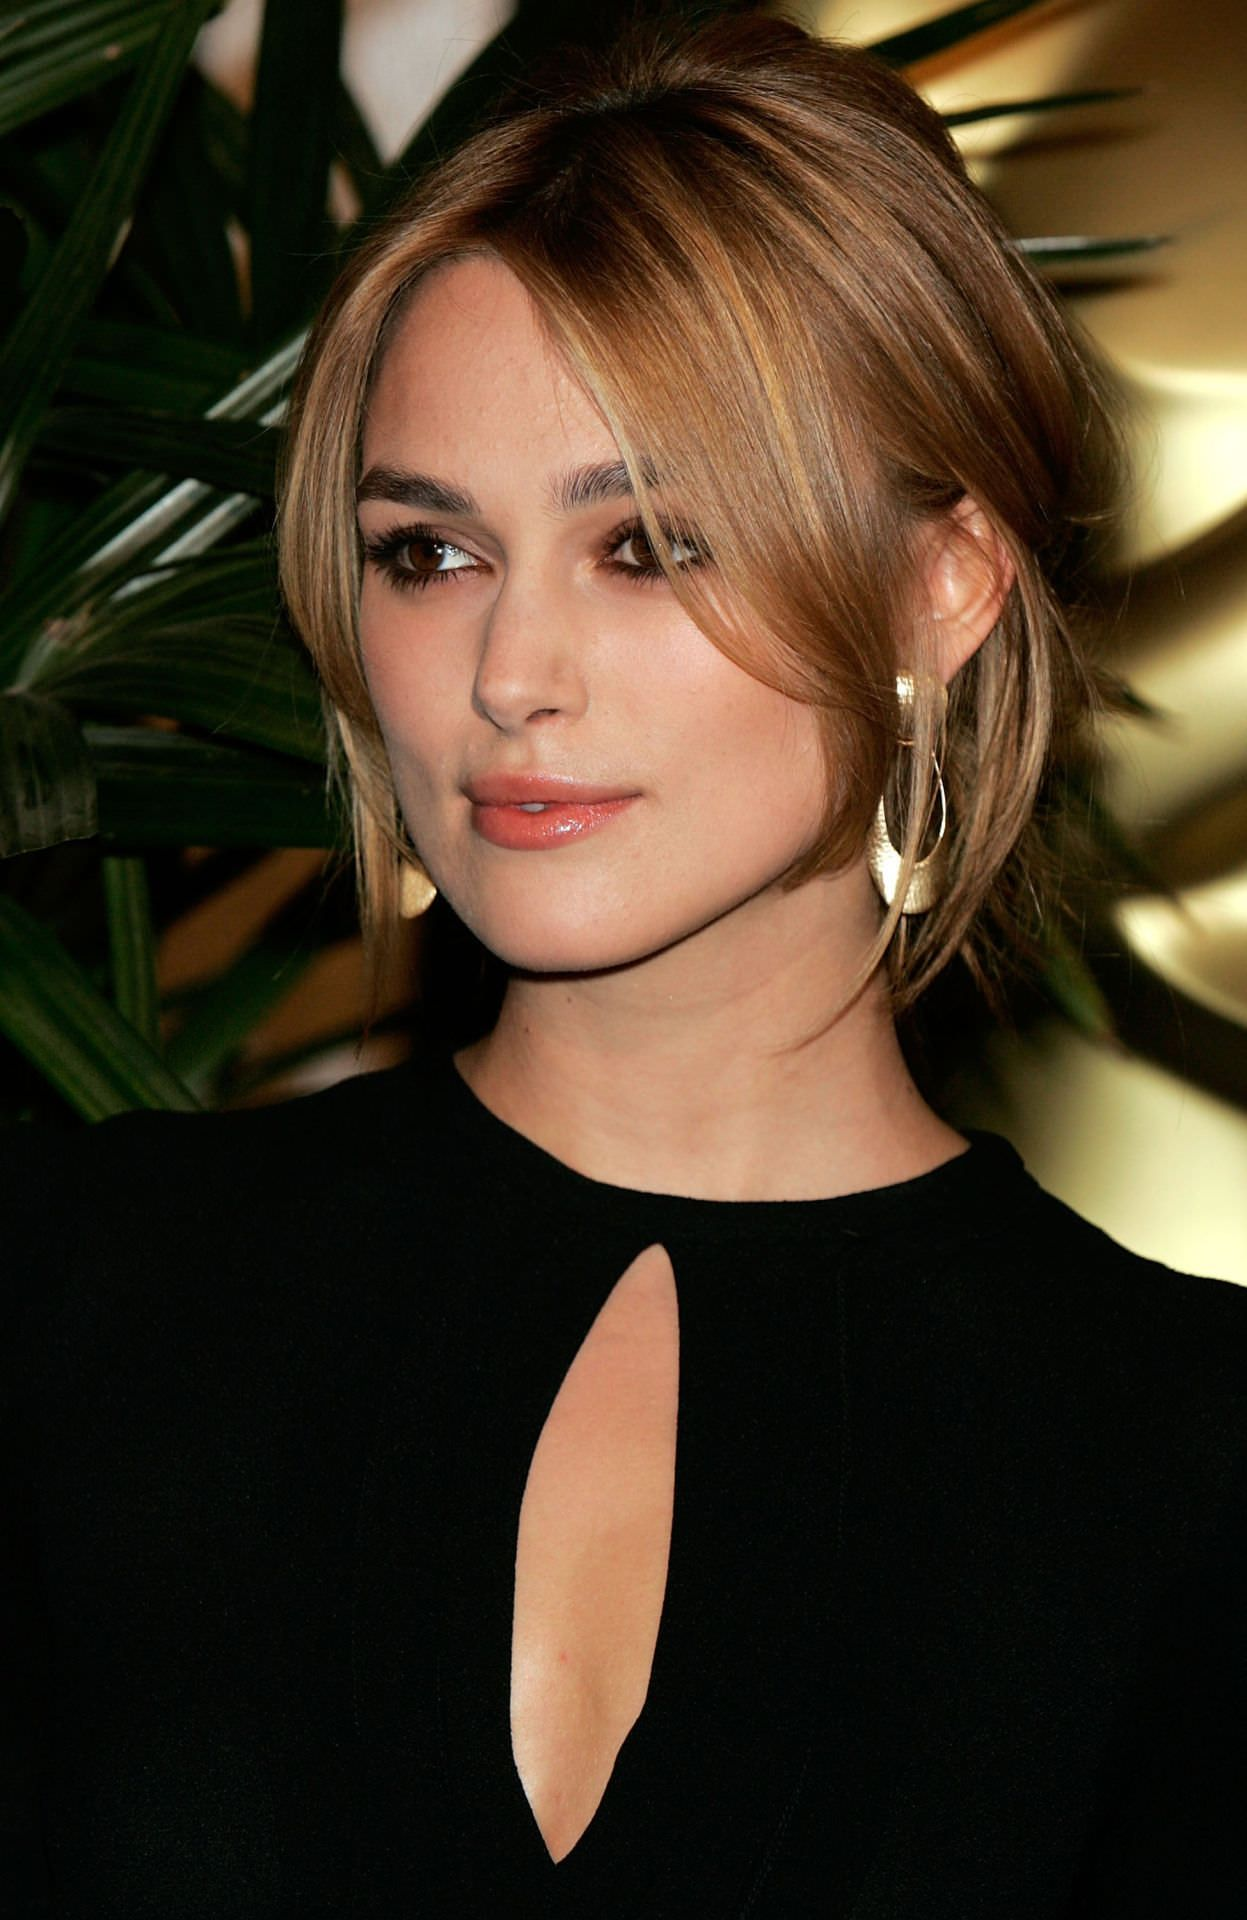 keira knightley is a british actress | #actress #celebrities #looks